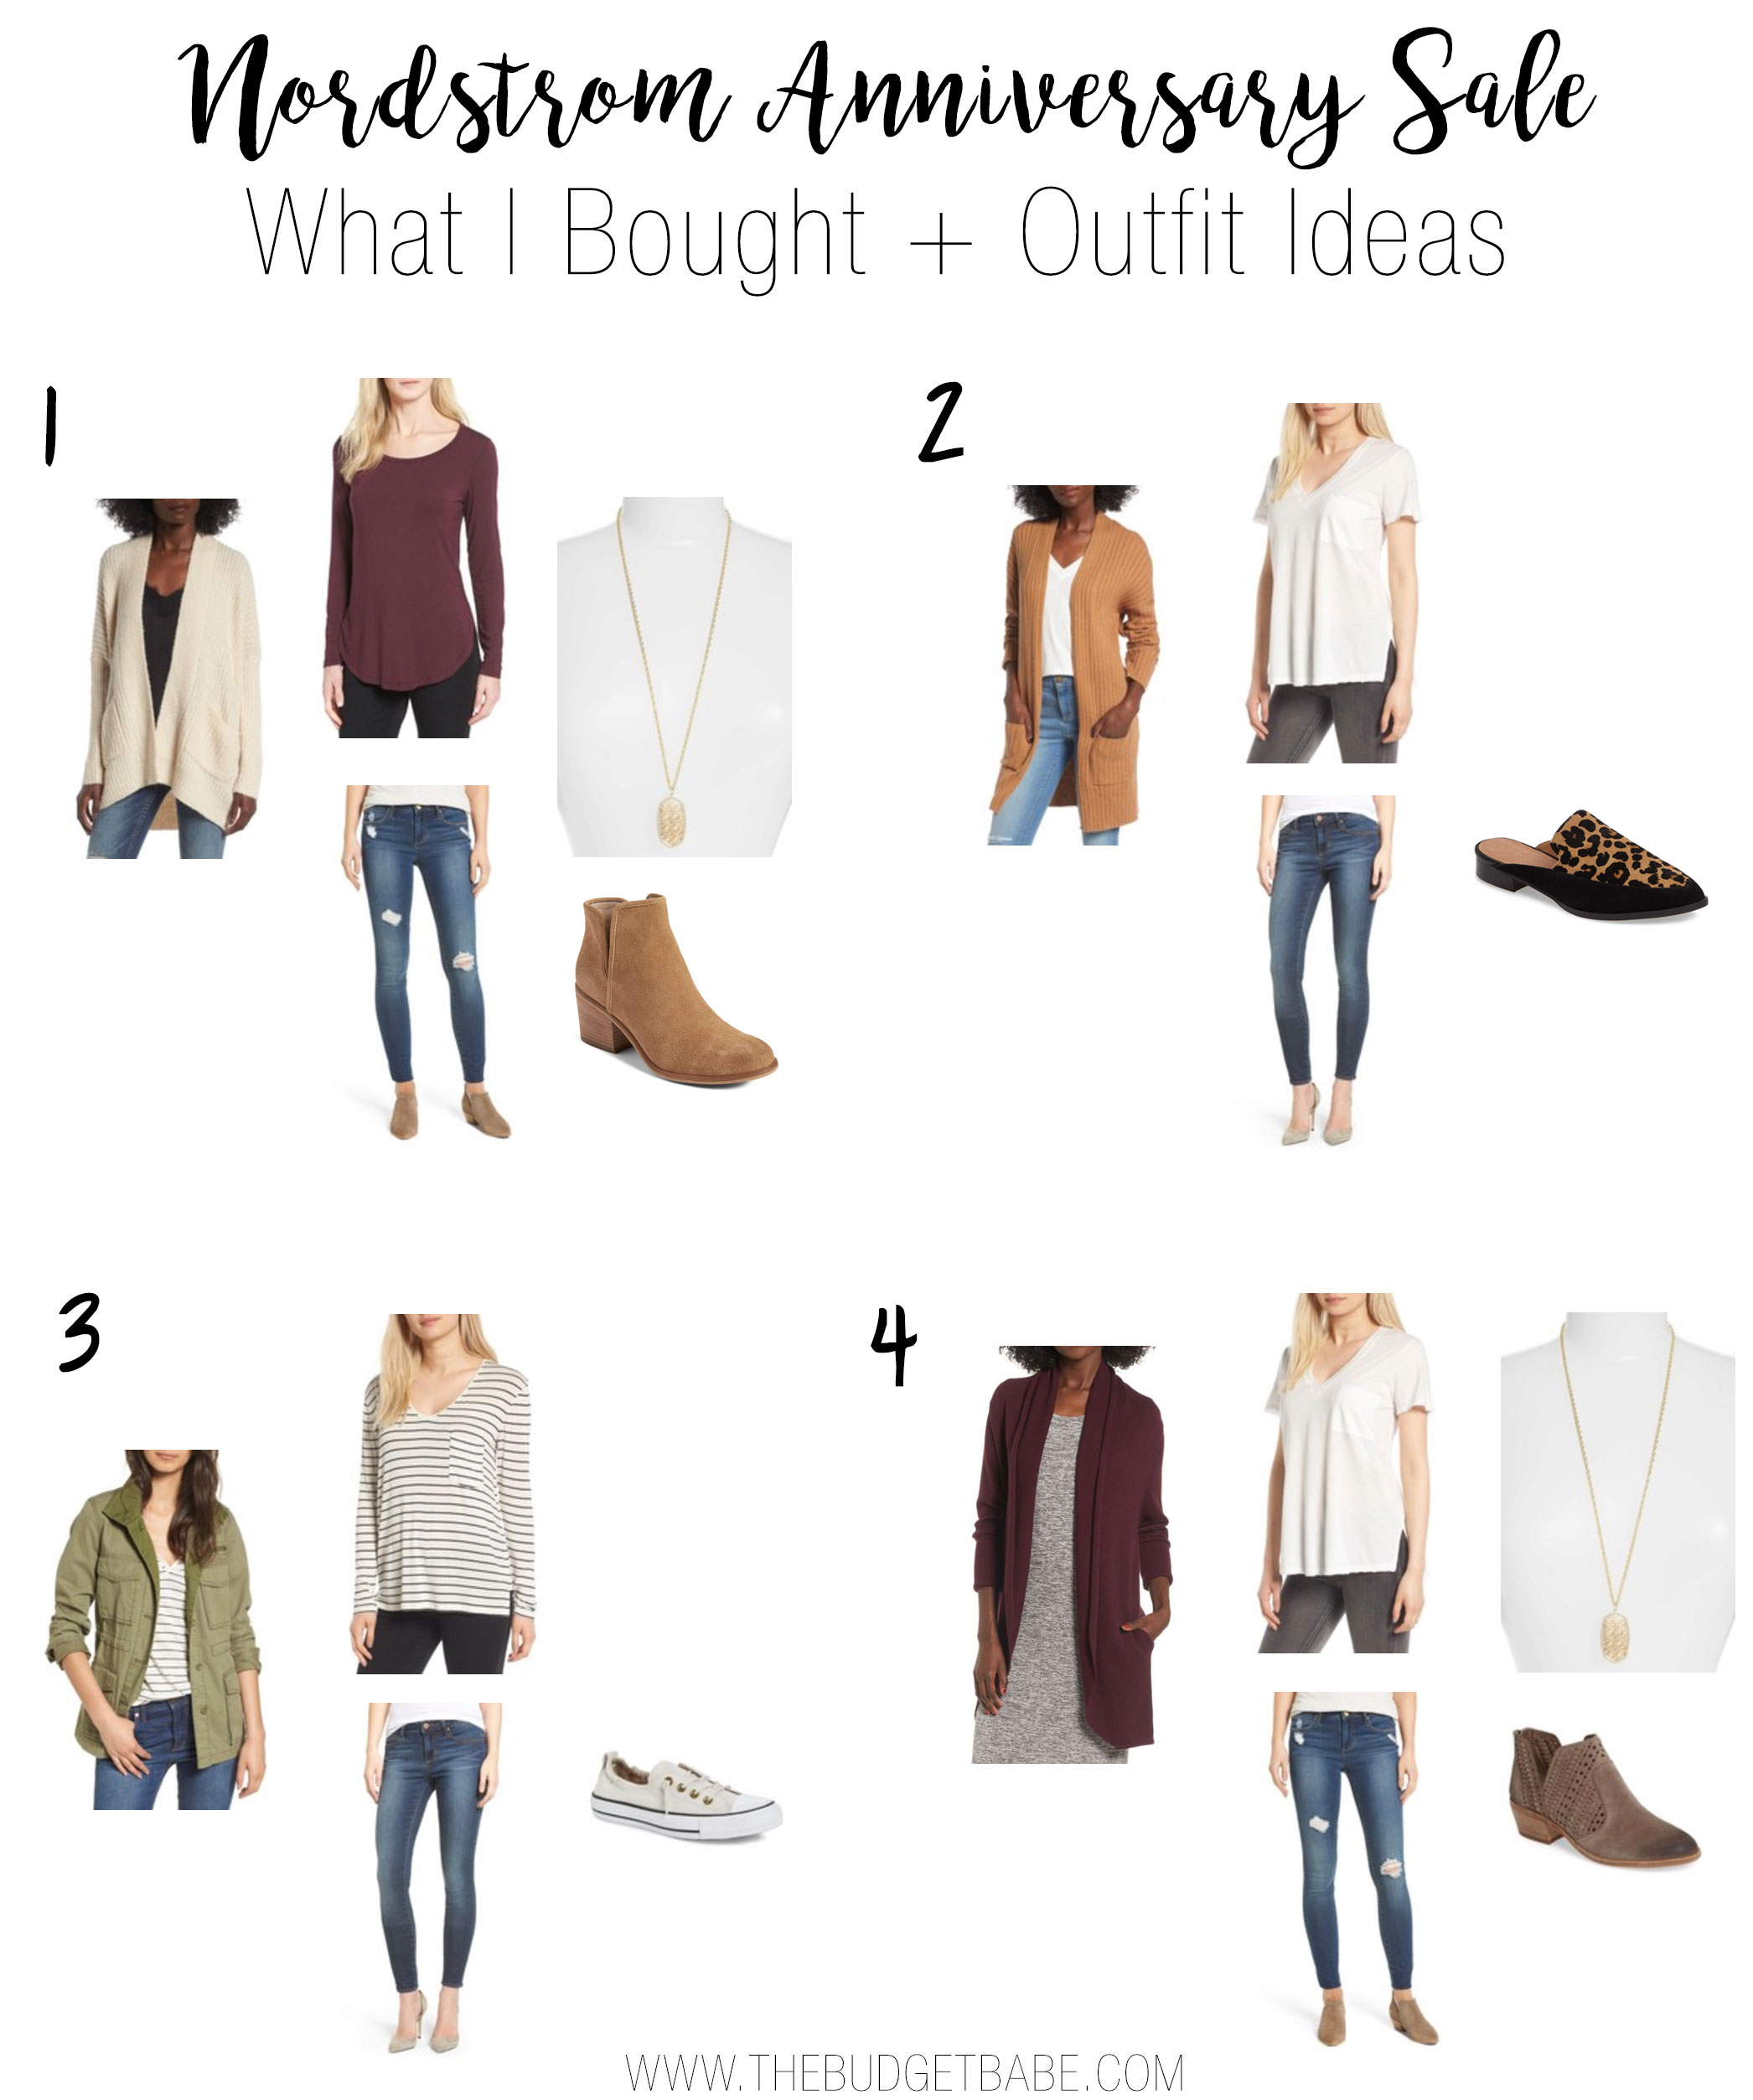 54d3814866b1 Nordstrom Anniversary Sale  What I Bought + Outfit Ideas - The ...